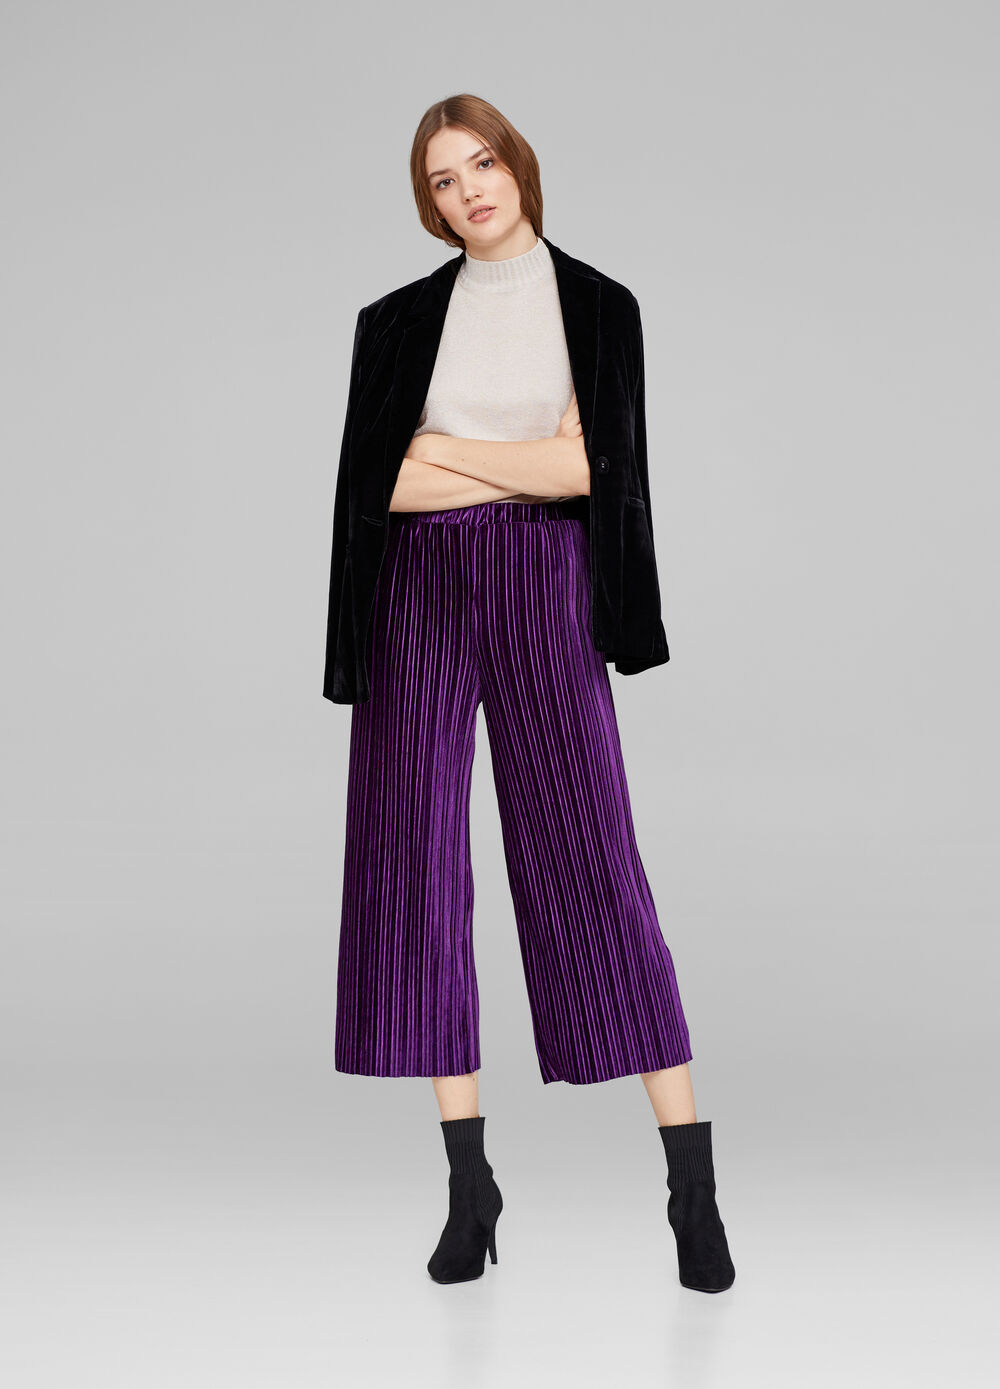 Stretch French knickers in pleated velvet